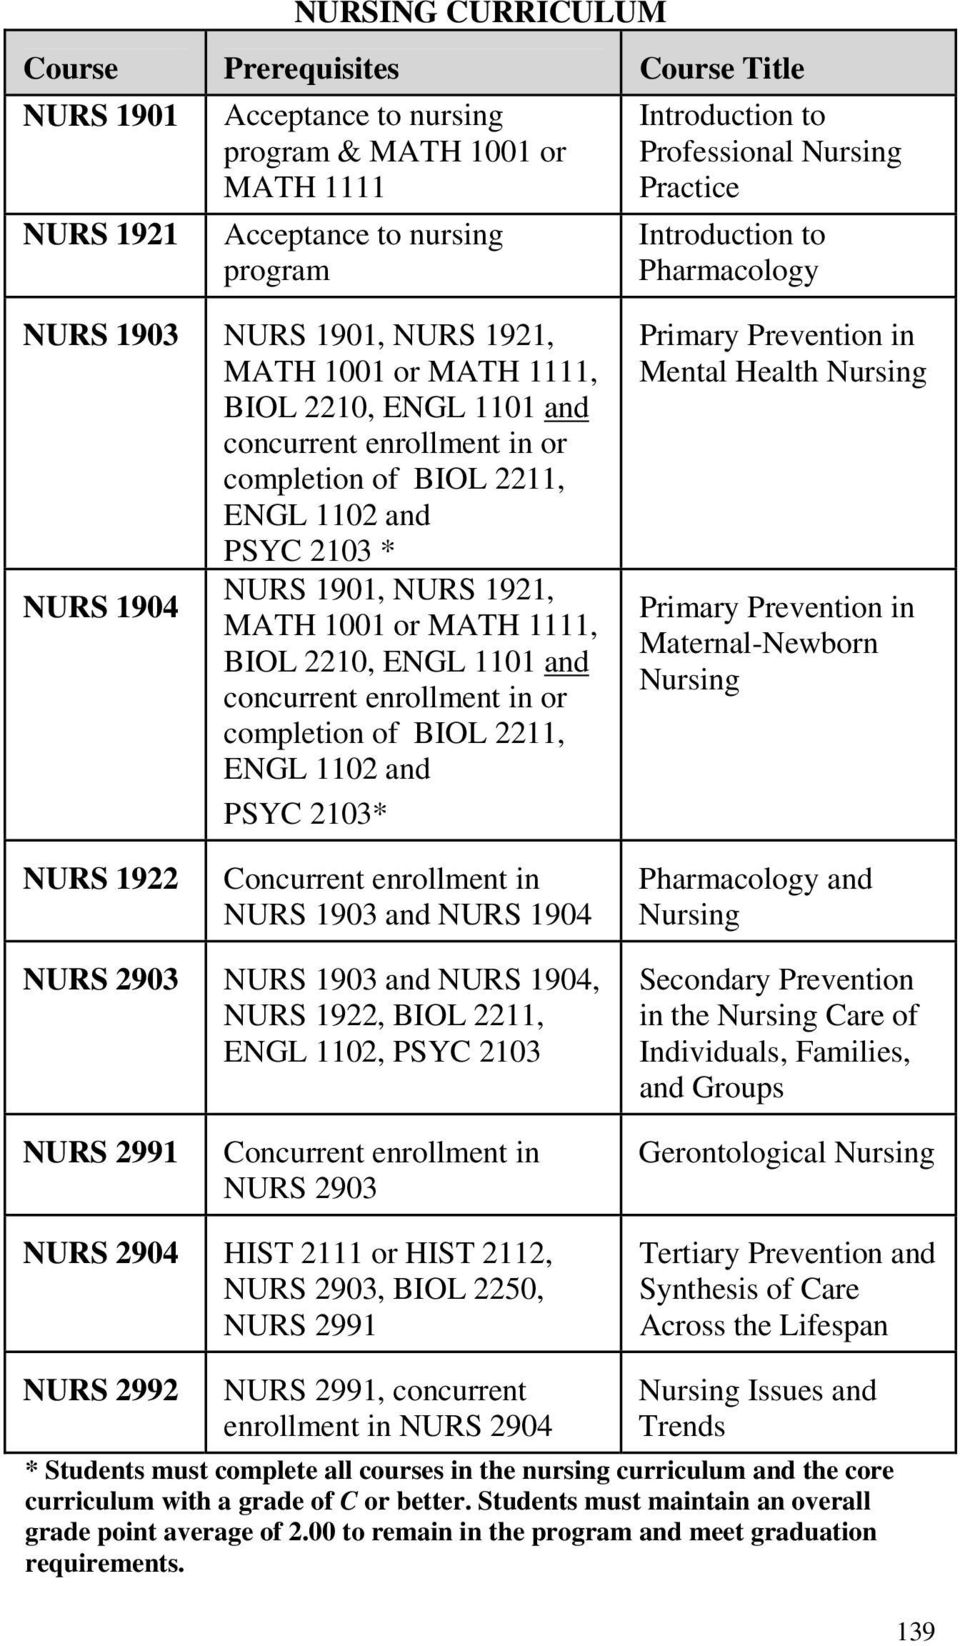 NURS 1901, NURS 1921, NURS 1904 MATH 1001 or MATH 1111, BIOL 2210, ENGL 1101 and concurrent enrollment in or completion of BIOL 2211, ENGL 1102 and PSYC 2103* Primary Prevention in Mental Health